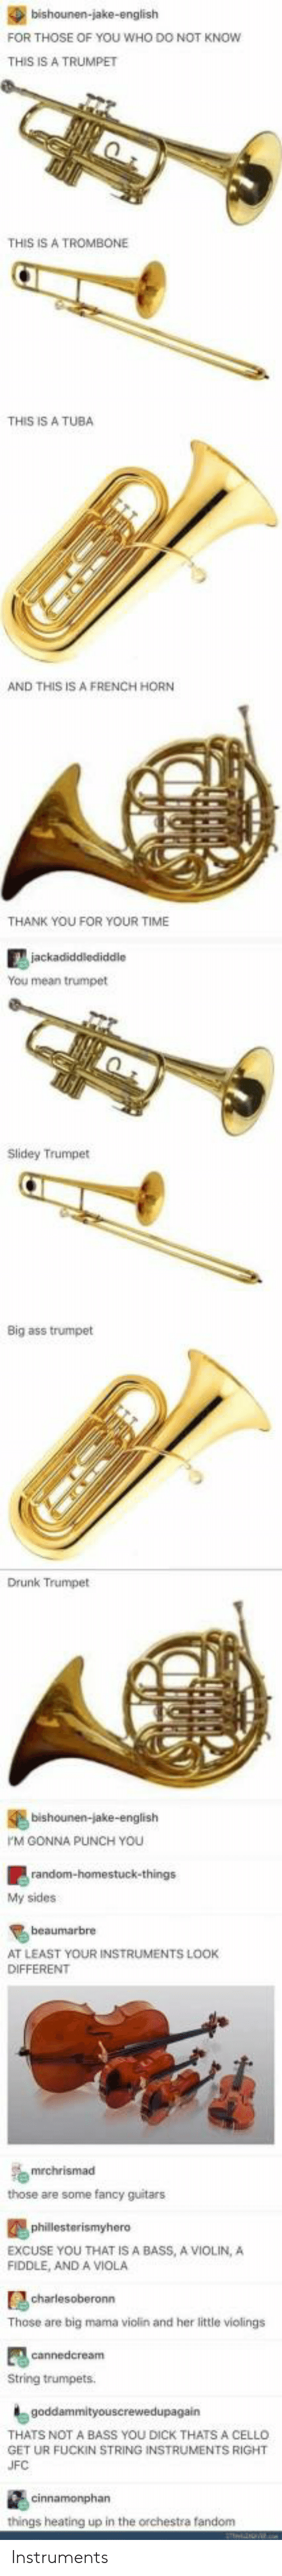 You Dick: FOR THOSE OF YOU WHO DO NOT KNOw  THIS IS A TRUMPET  THIS IS A TROMBONE  THIS IS A TUBA  AND THIS IS A FRENCH HORN  THANK YOU FOR YOUR TIME  You mean trumpet  Slidey Trumpet  Big ass trumpet  Drunk Trumpet  M GONNA PUNCH YOU  My sides  AT LEAST YOUR INSTRUMENTS LOOK  DIFFERENT  those are some fancy guitars  EXCUSE YOU THAT IS A BASS, A VIOLIN,A  FIDDLE, AND A VIOLA  Those are big mama violin and her little violings  String trumpets  THATS NOT A BASS YOU DICK THATS A CELLO  GET UR FUCKIN STRING INSTRUMENTS RIGHT  things heating up in the orchestra fandom Instruments